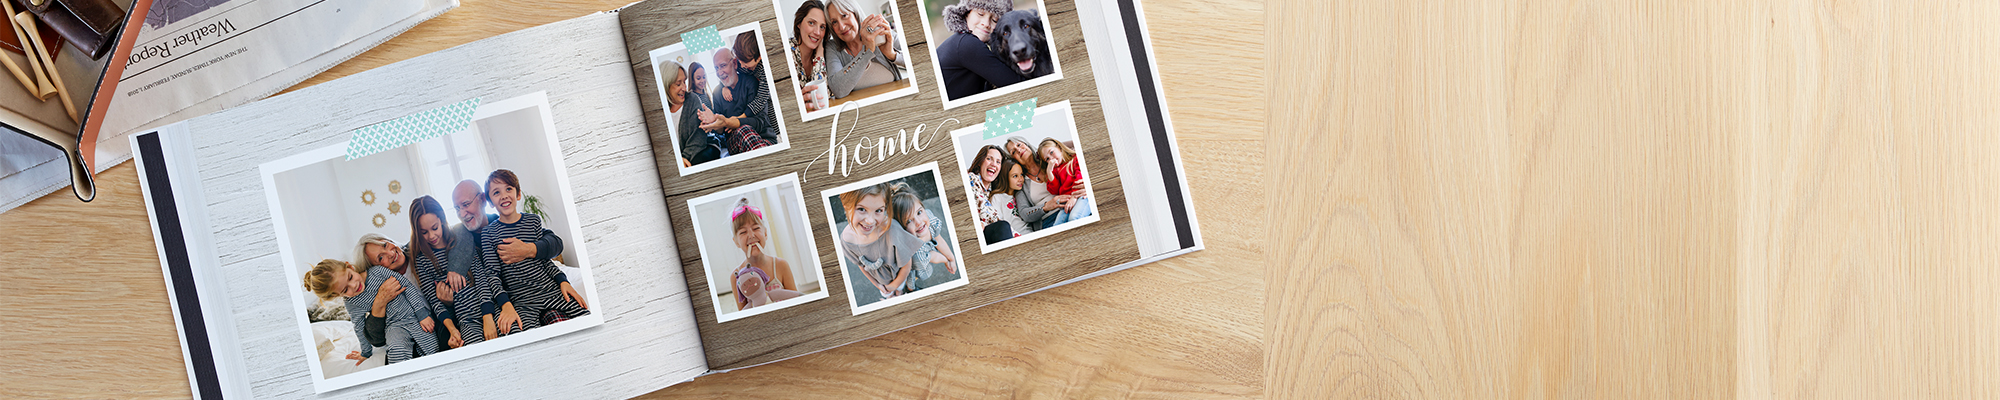 Photo Books Spring those photos from your phone and into our customizable photo books.